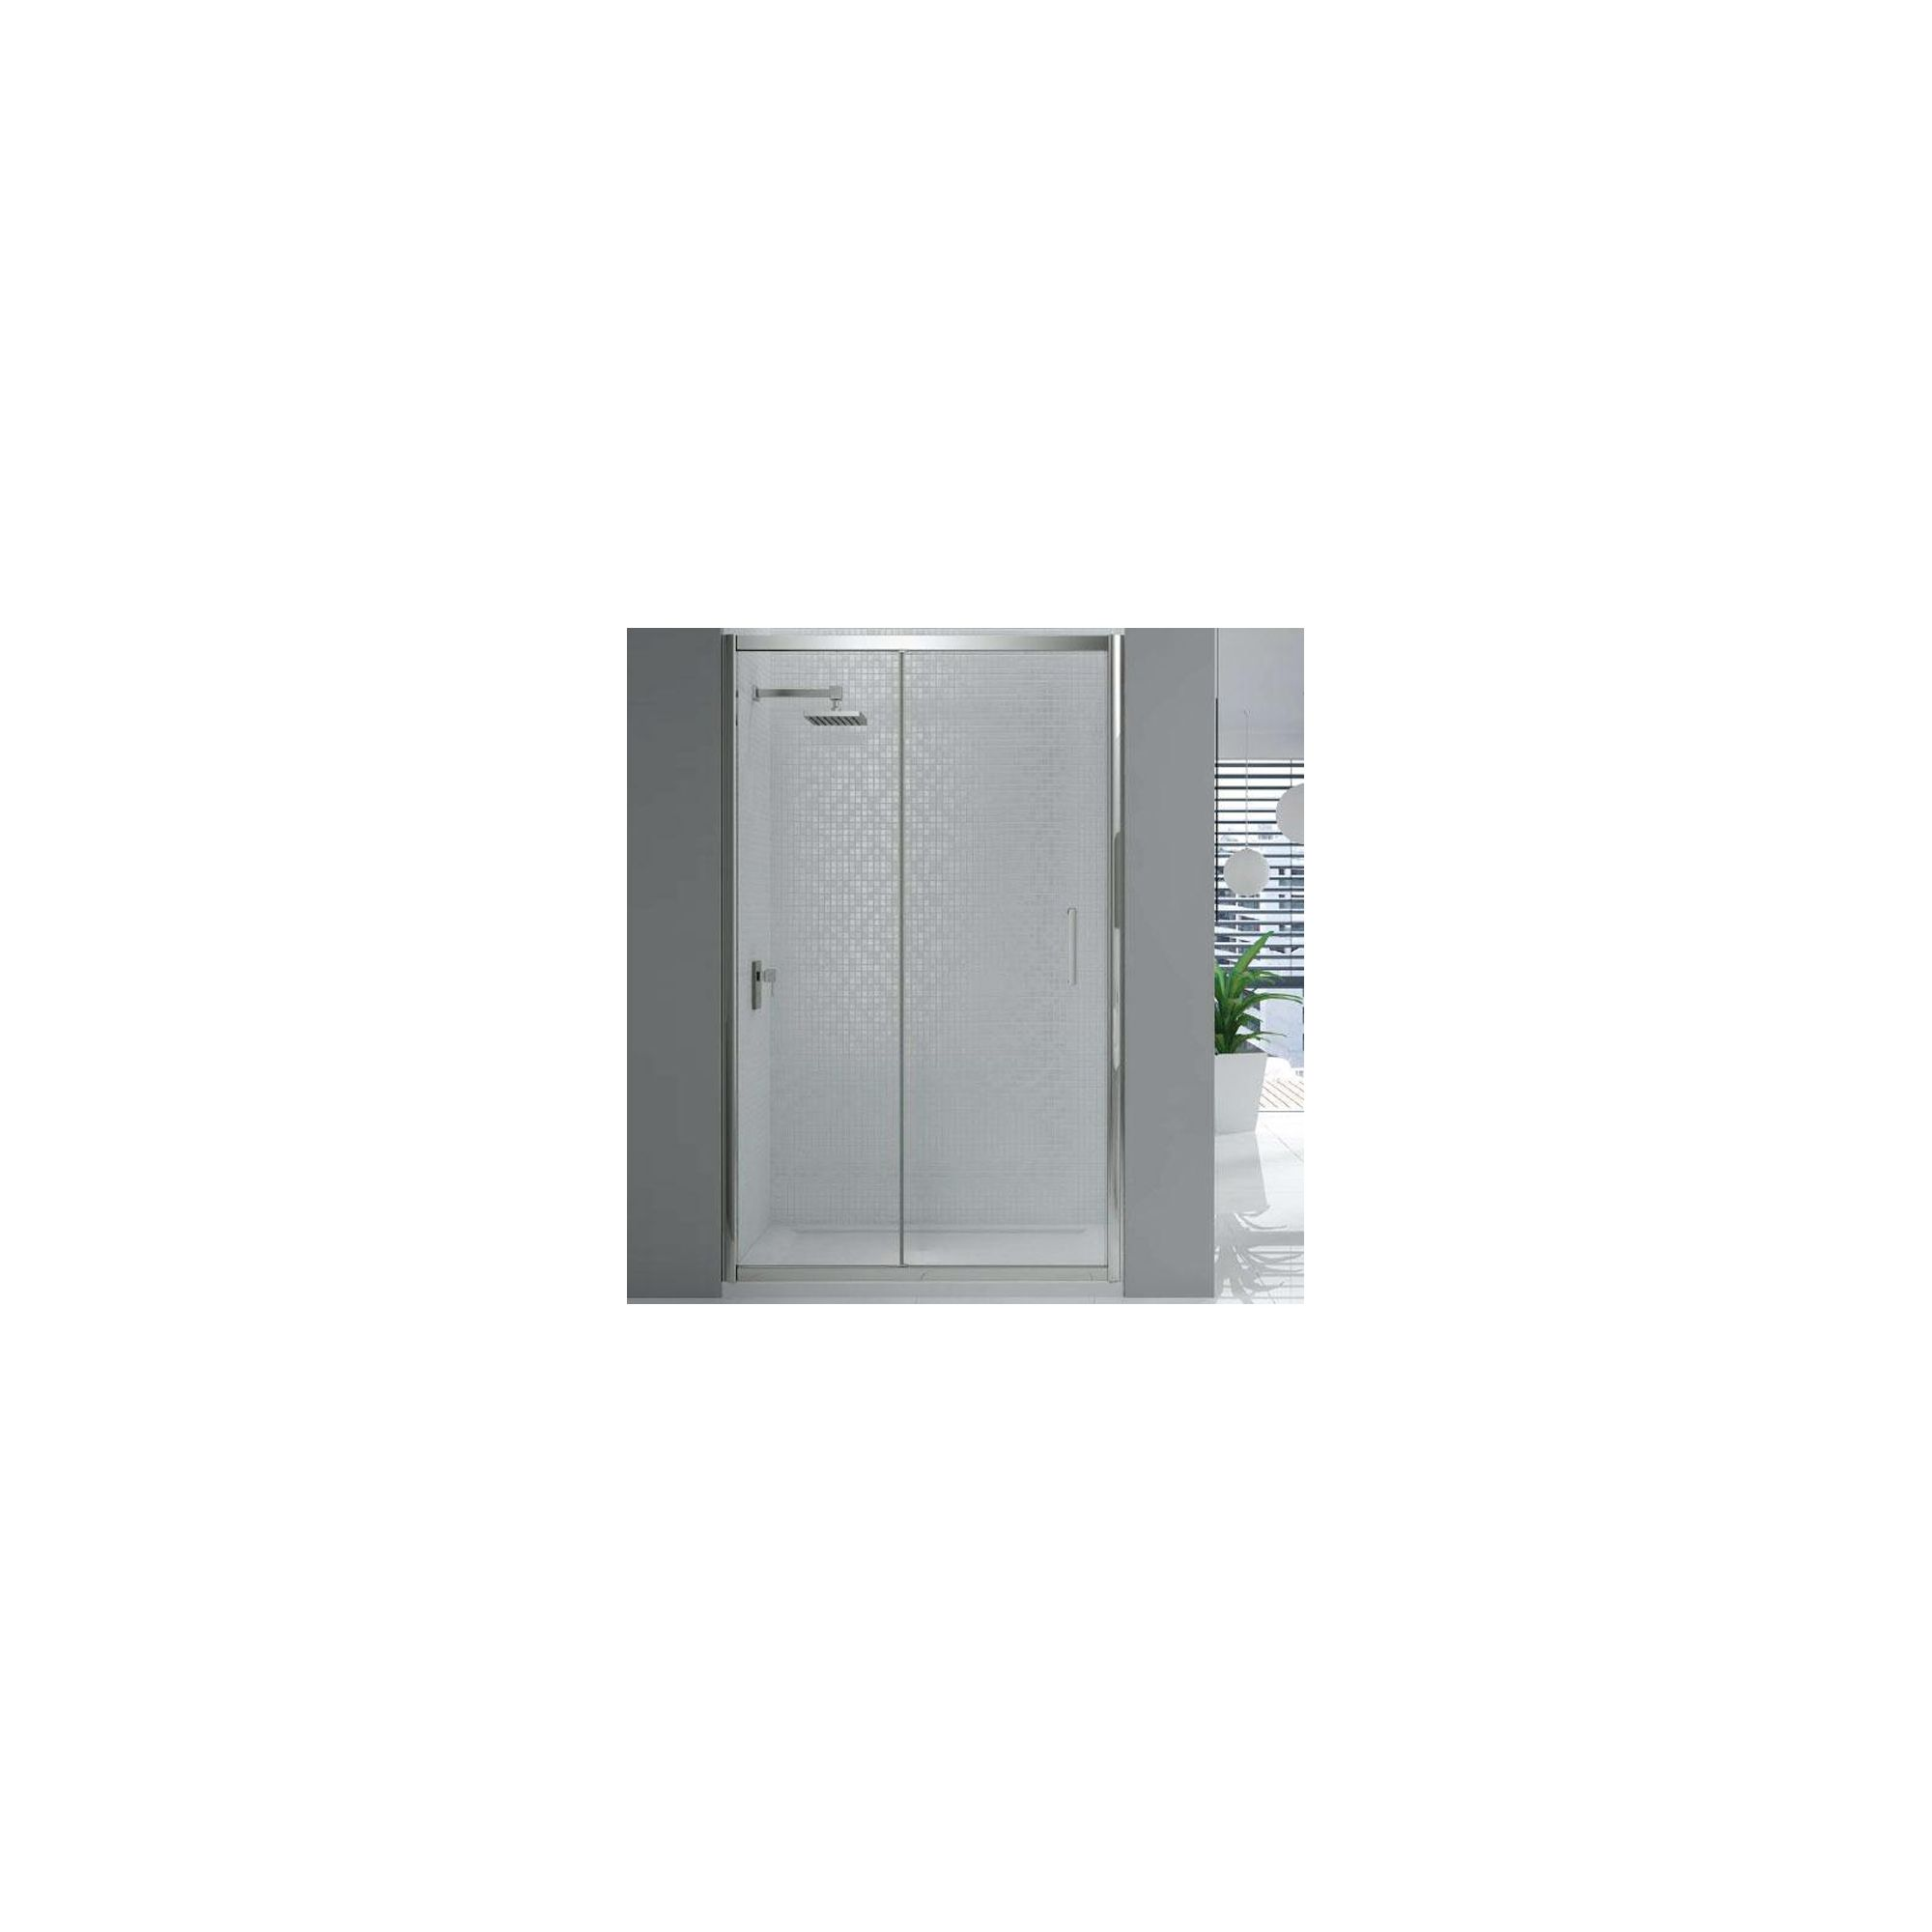 Merlyn Vivid Six Sliding Shower Door, 1100mm Wide, 6mm Glass at Tesco Direct